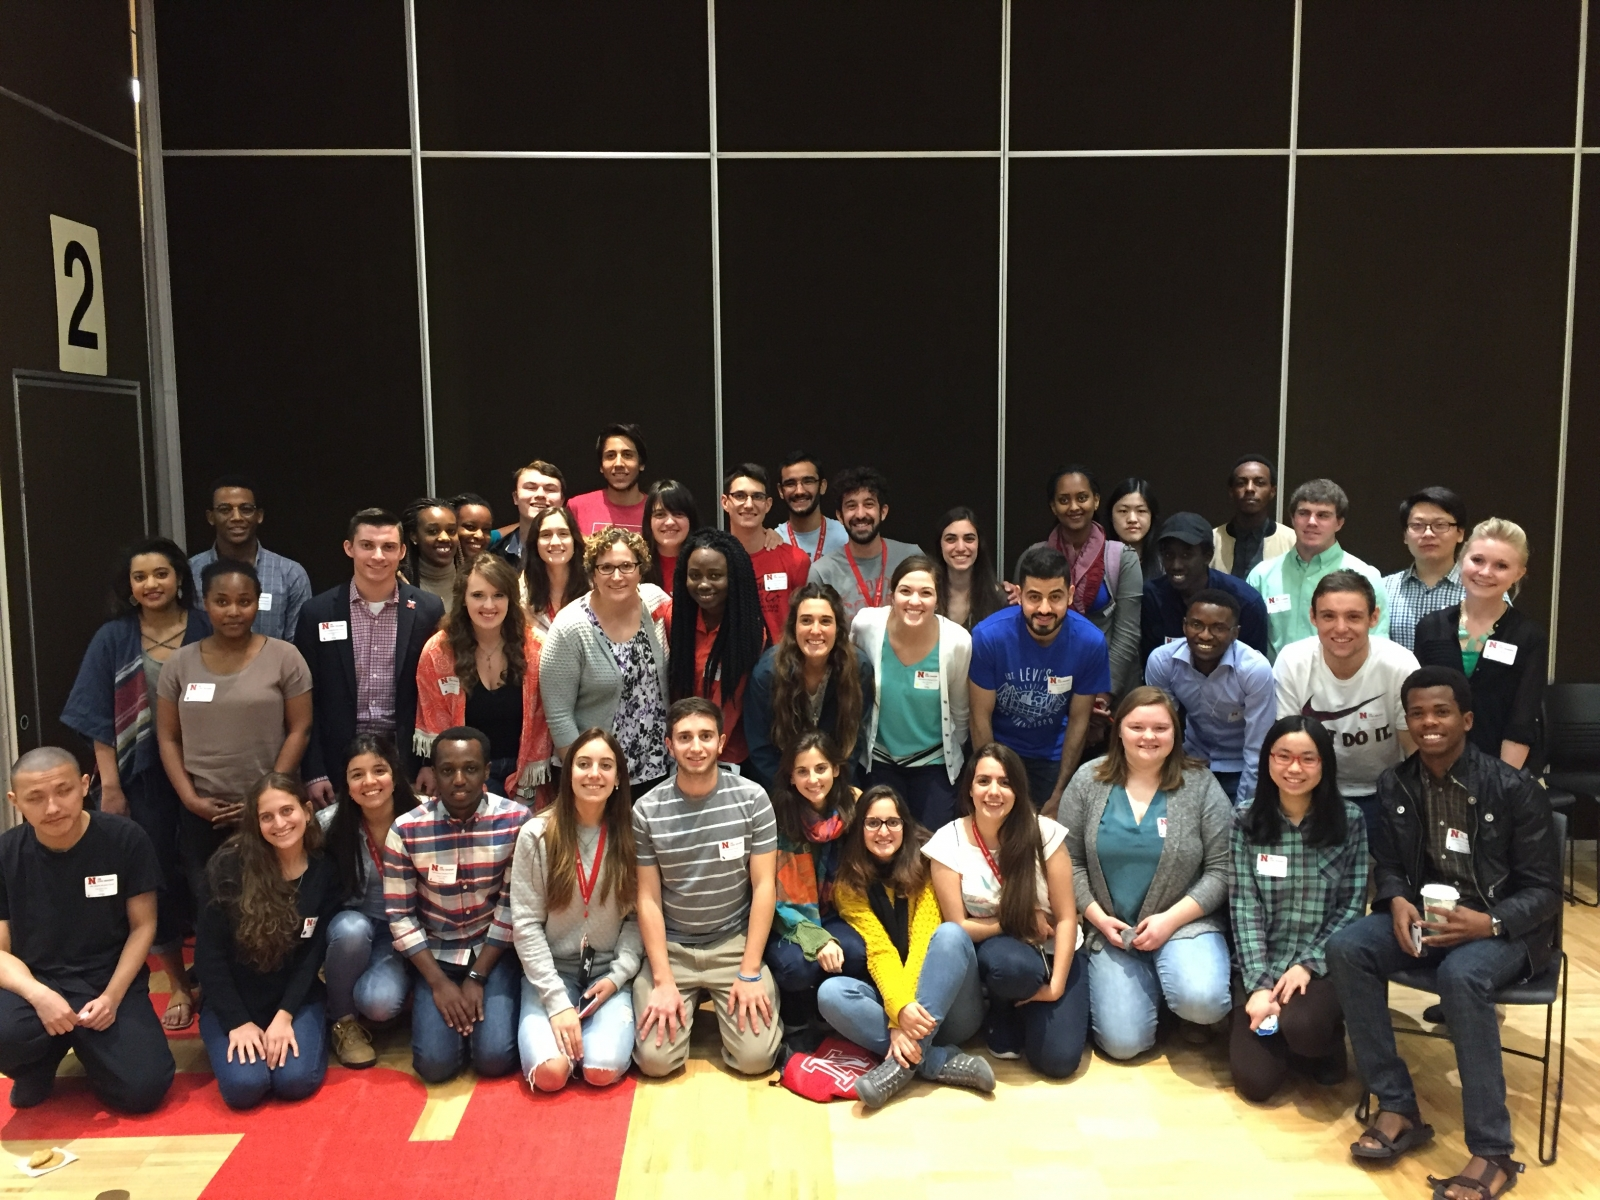 The international and domestic group consisted of American, Argentine, Rwandan and Chinese students at the University of Nebraska